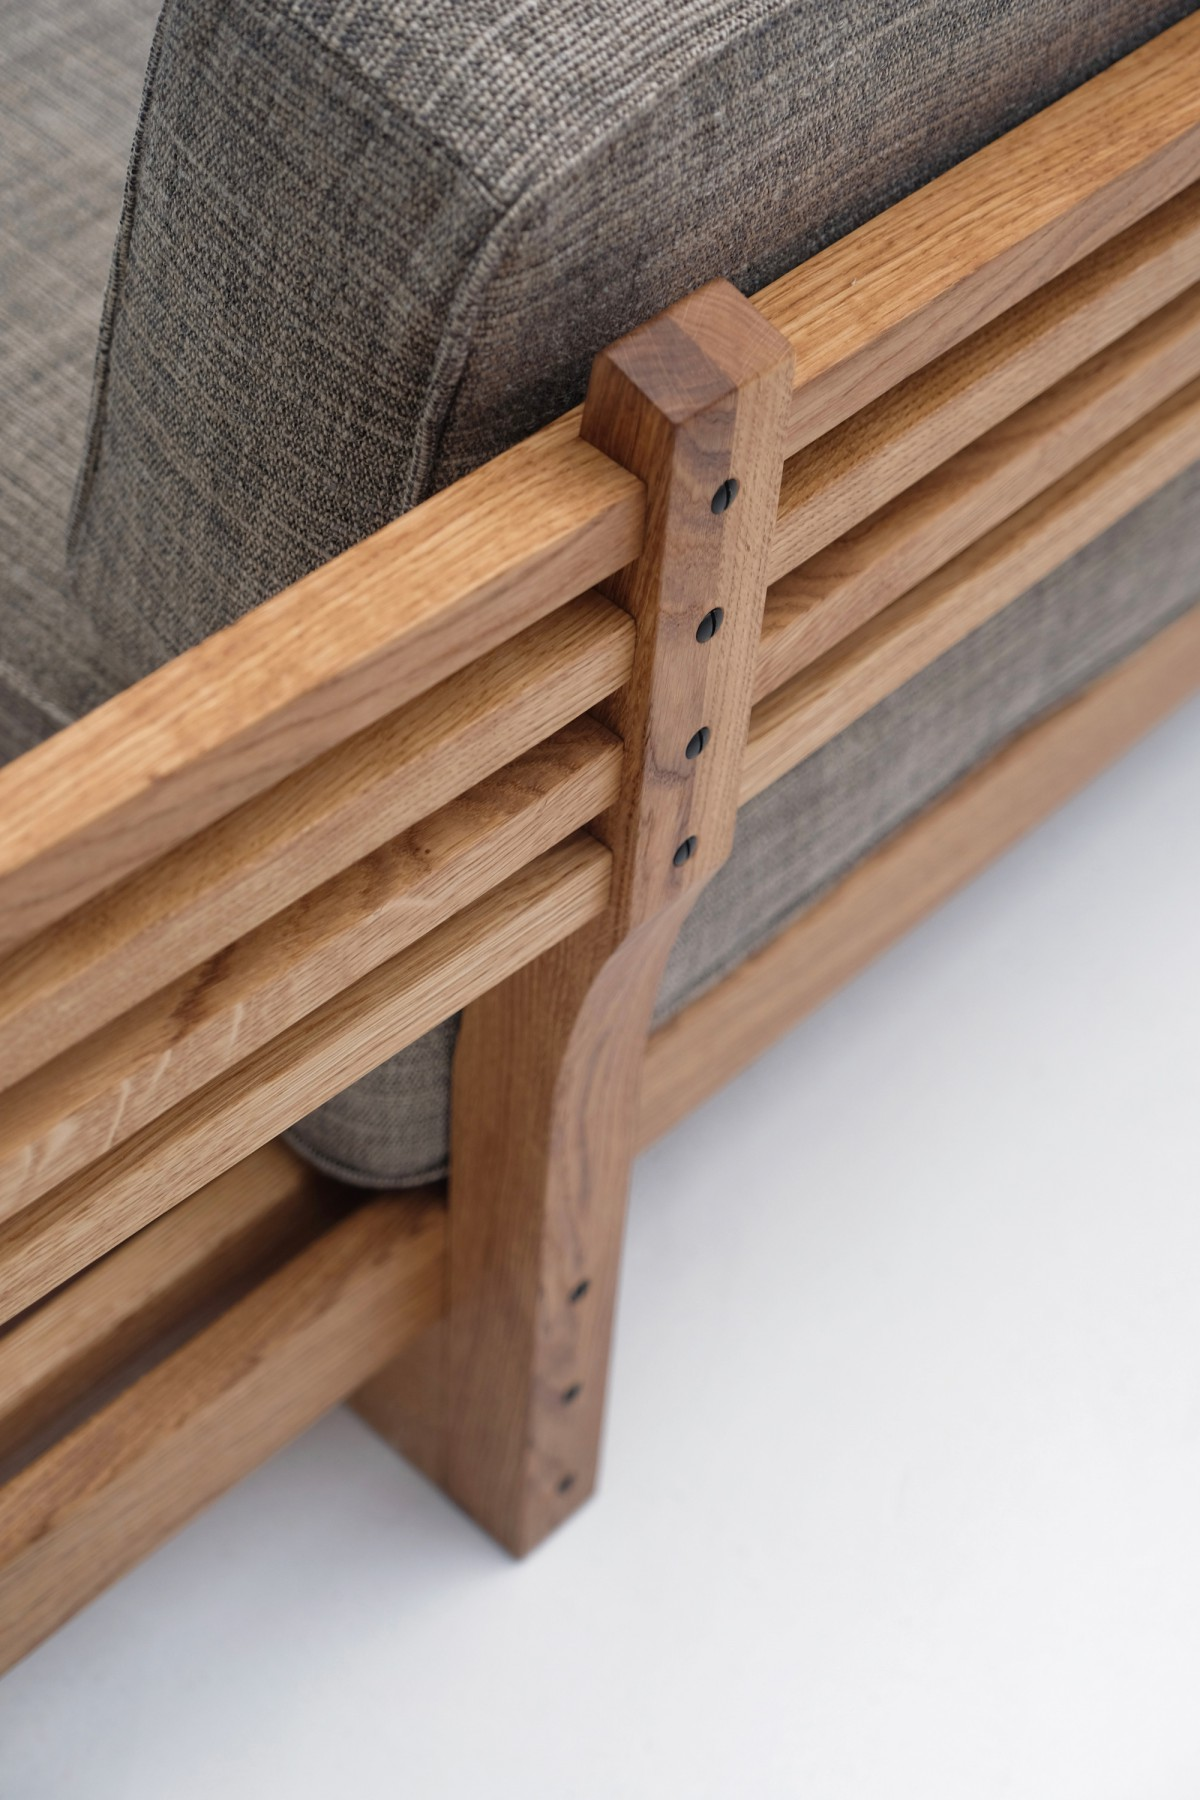 Japanese Bench by Alexandre Lowie